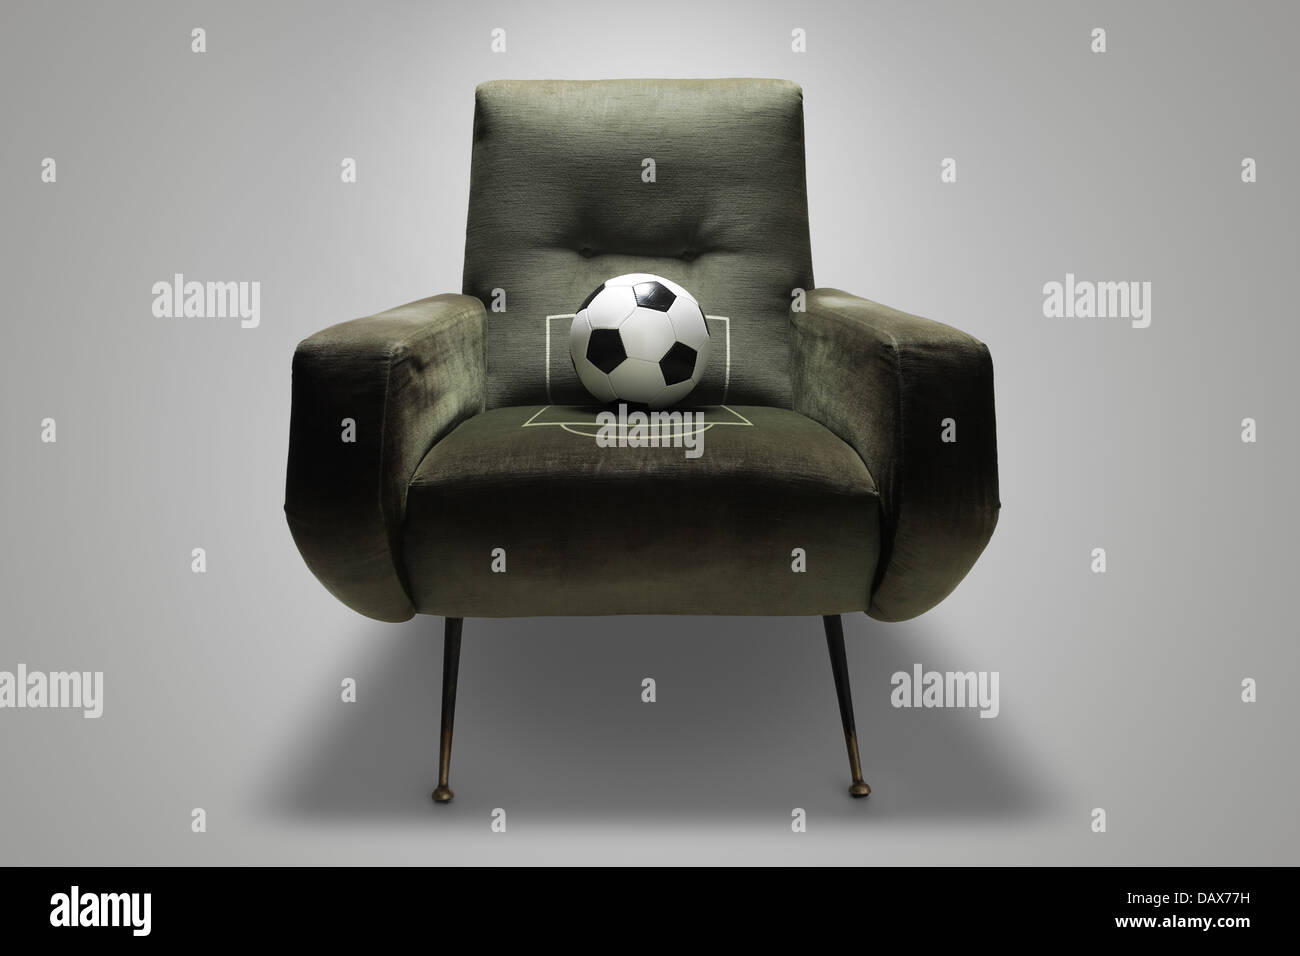 Football Photo Stock